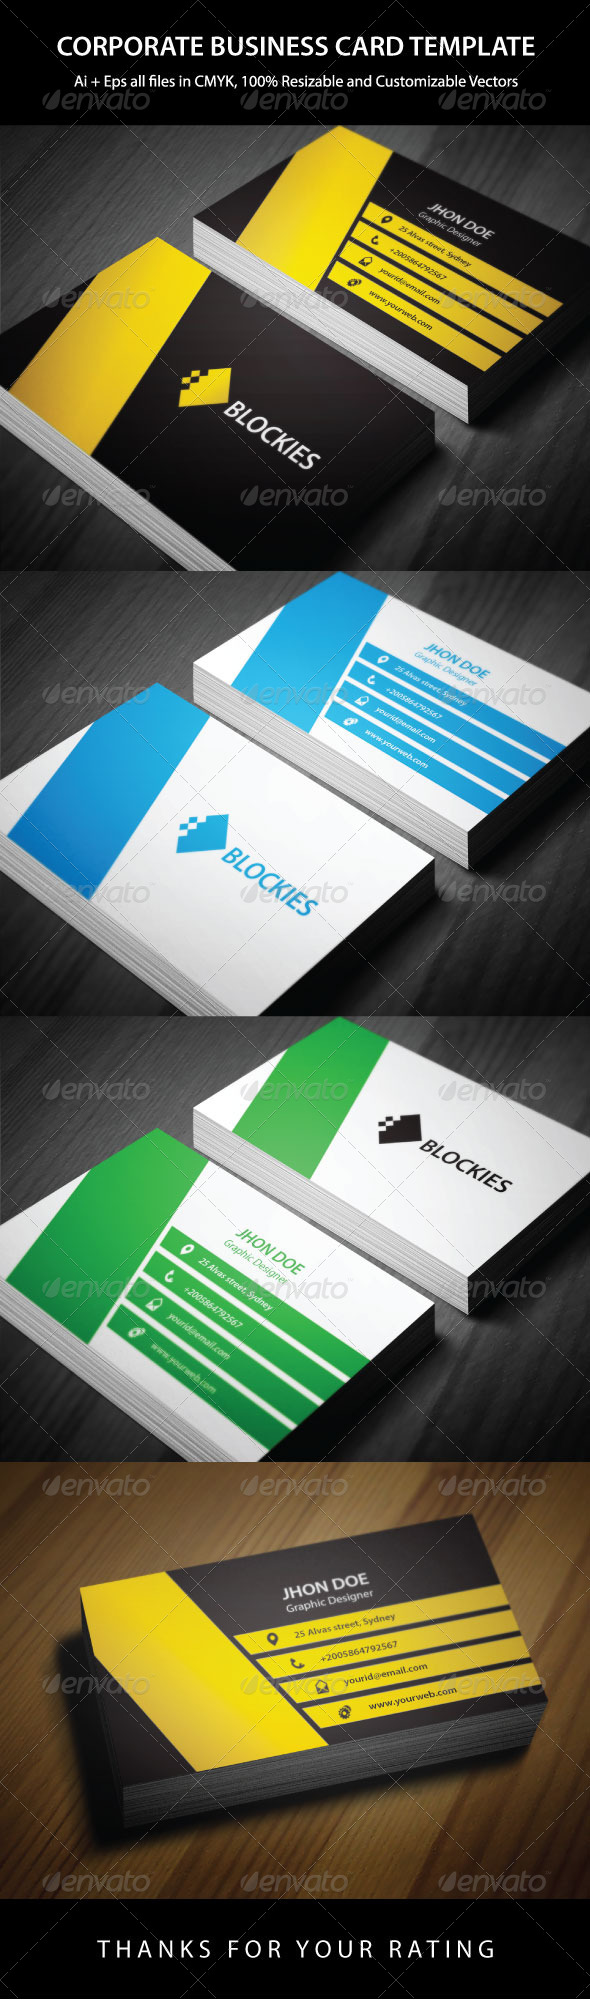 Corporate business card template pinterest corporate business corporate business card template graphicriver an excellent business card template which is suitable for any corporate or personal use reheart Image collections